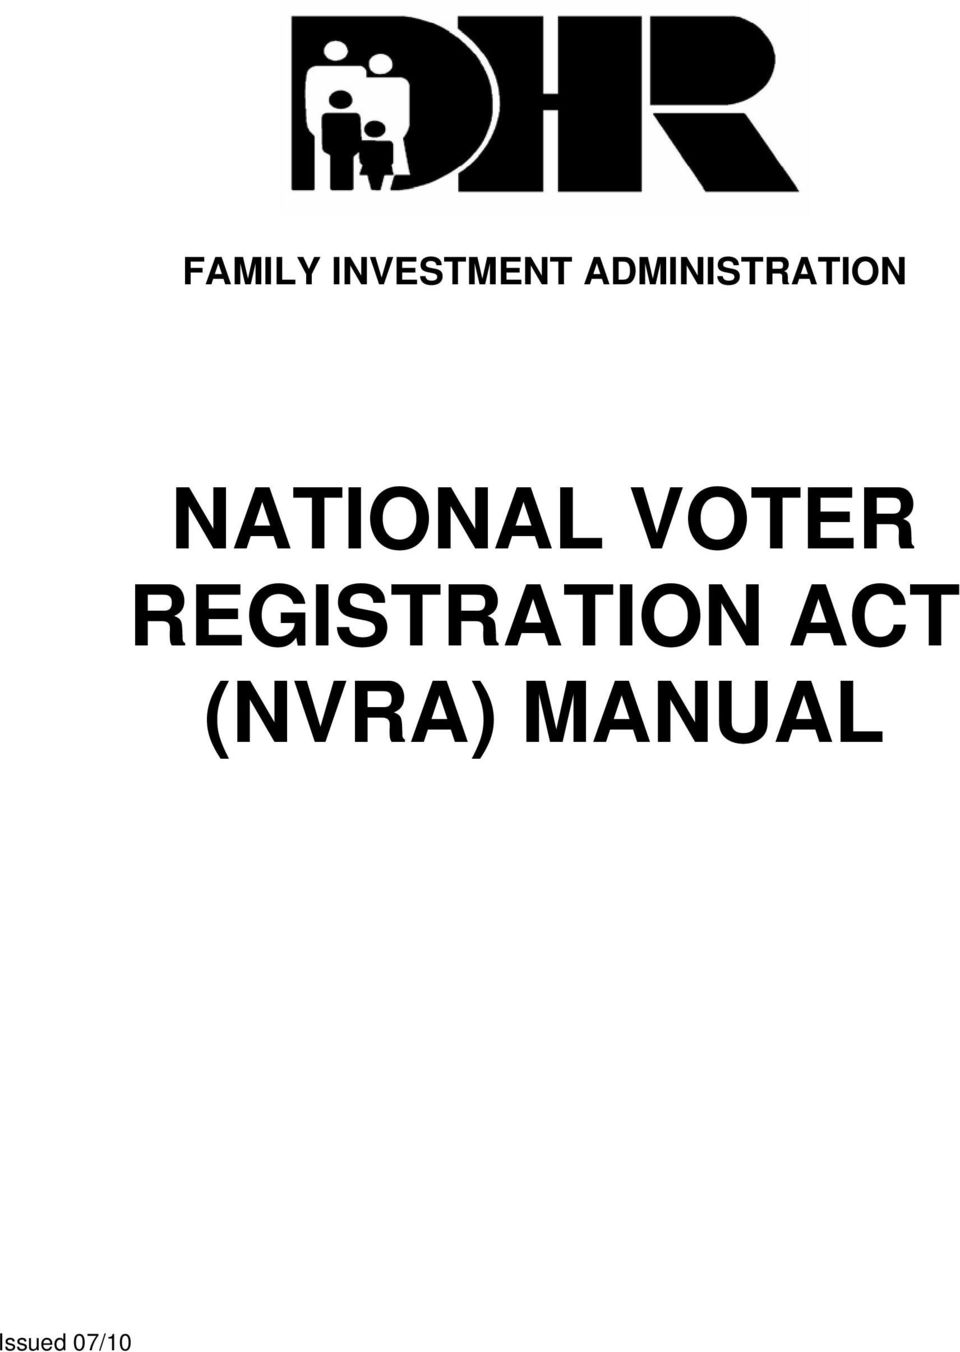 NATIONAL VOTER